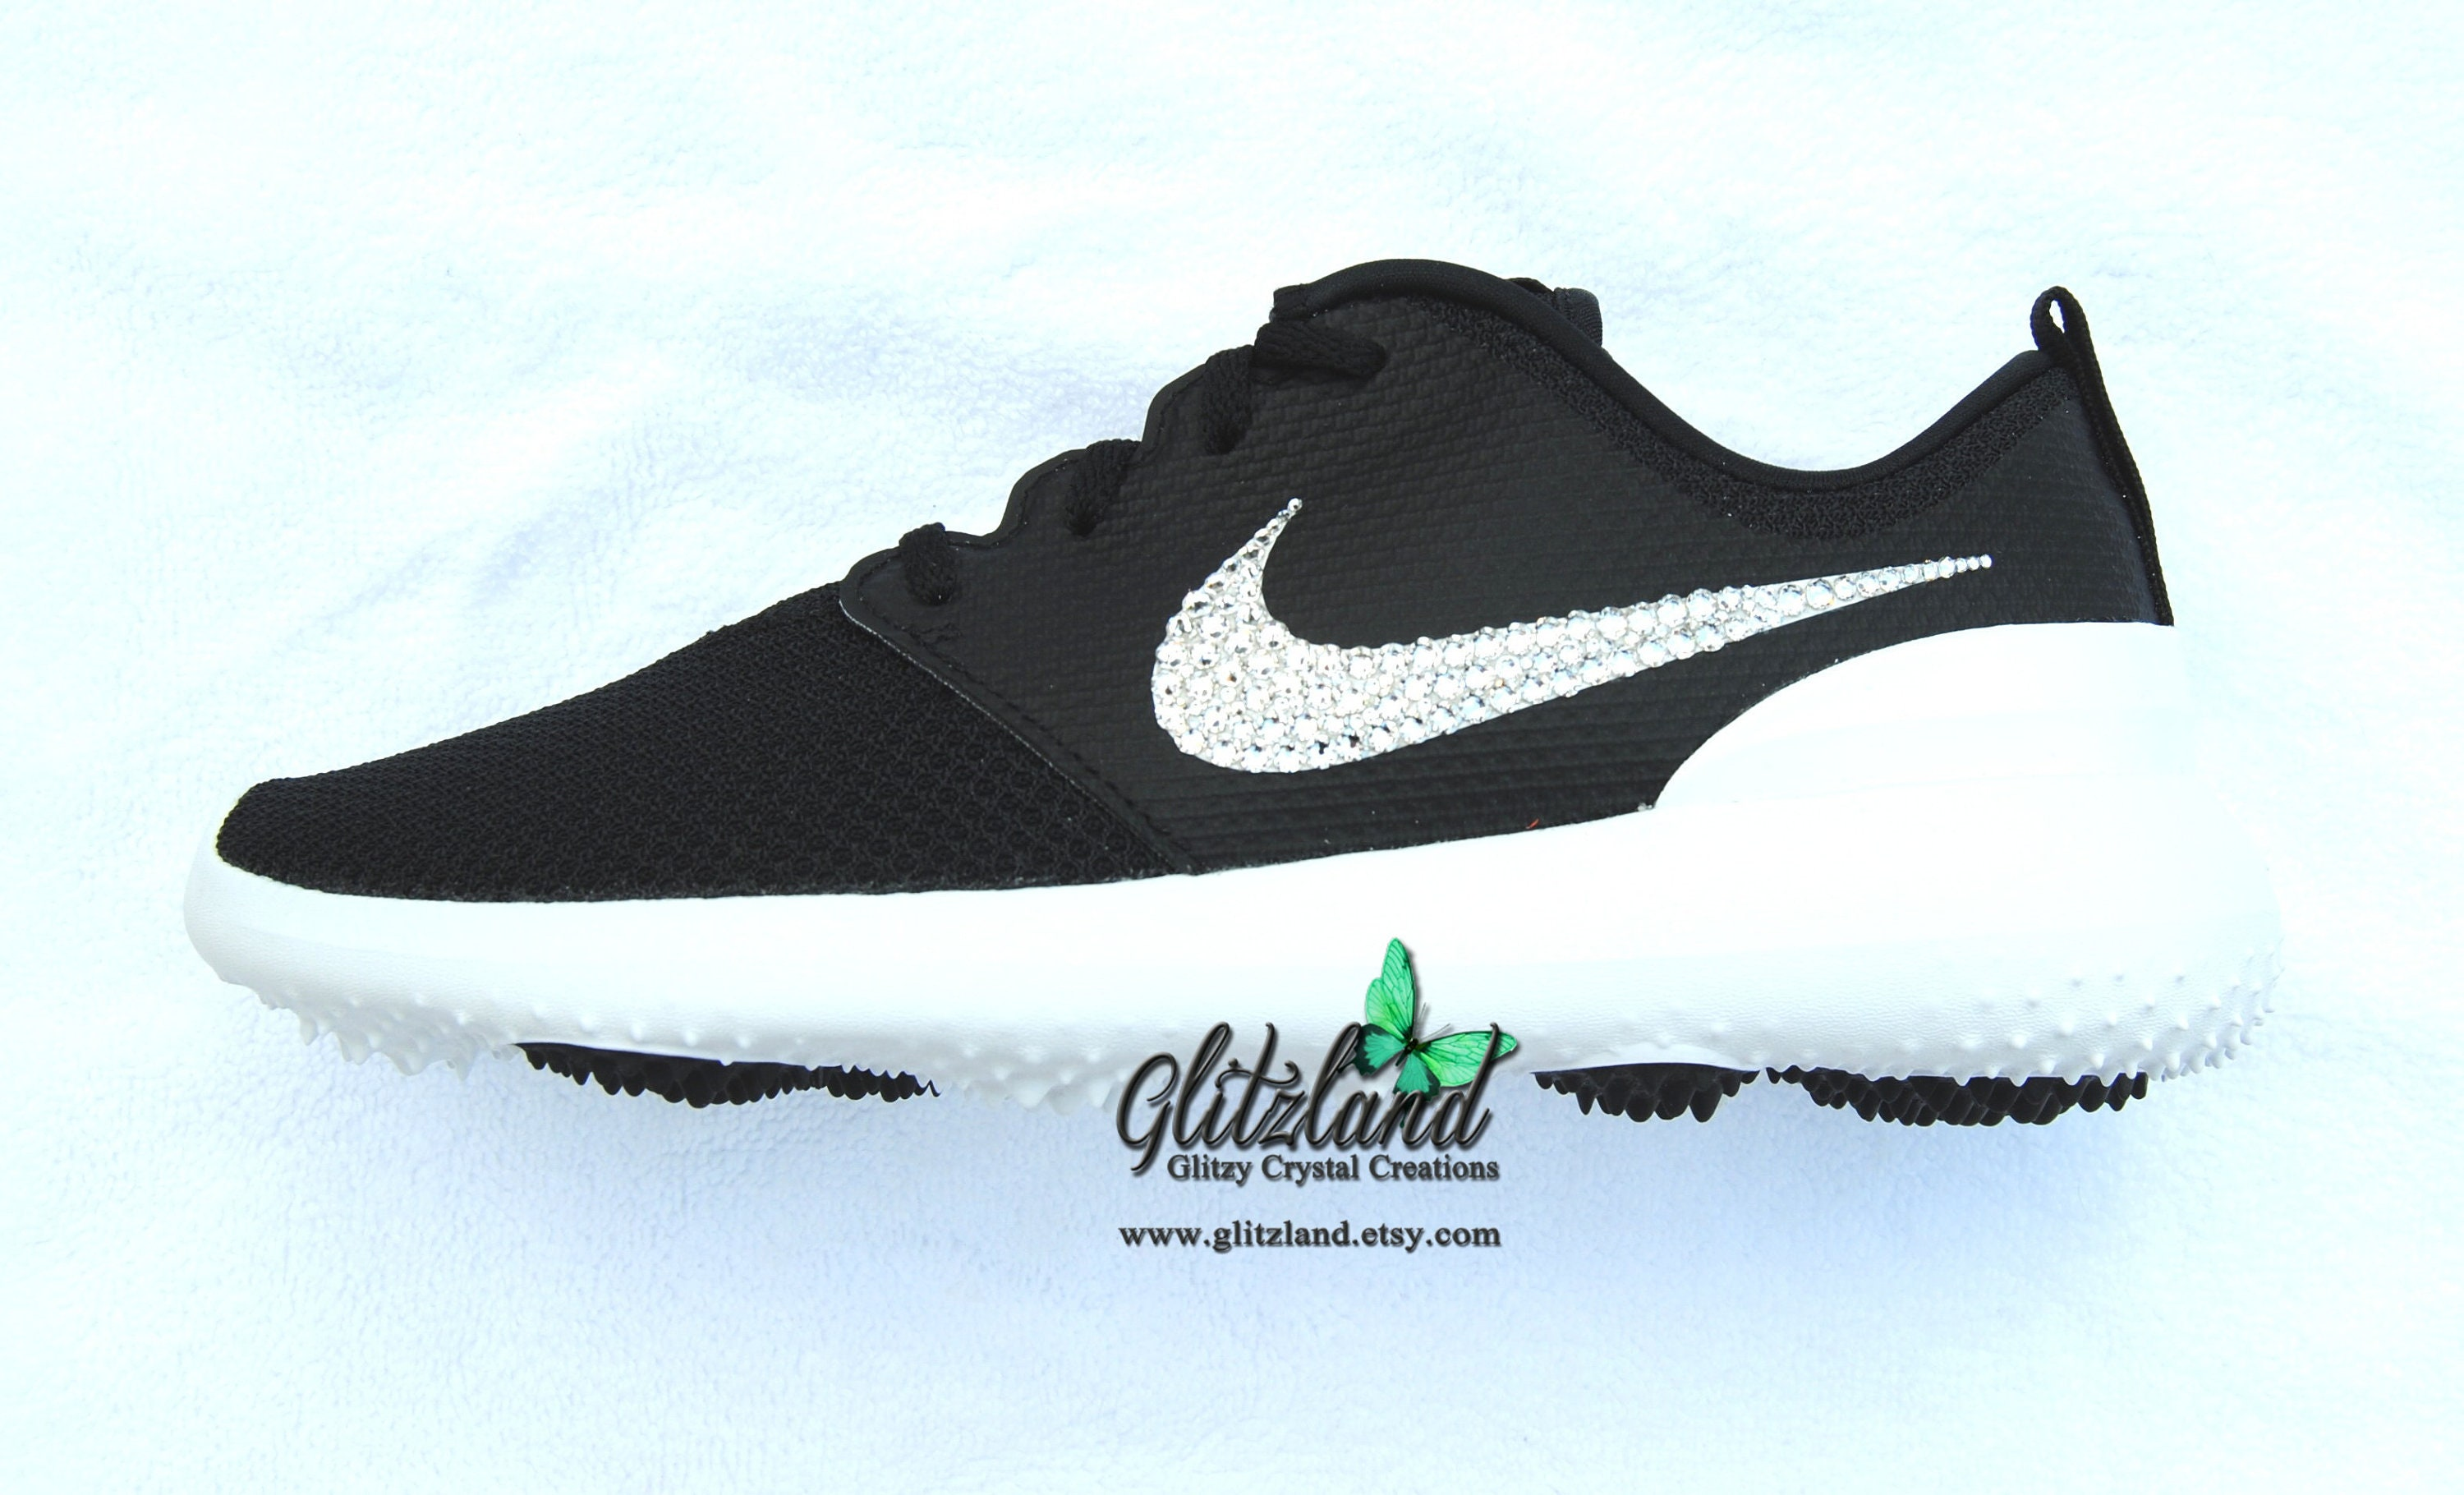 d86b6874a369 Swarovski Nike Roshe G Womens Golf Shoes Customized with SWAROVSKI®  Crystals Many Colors Available